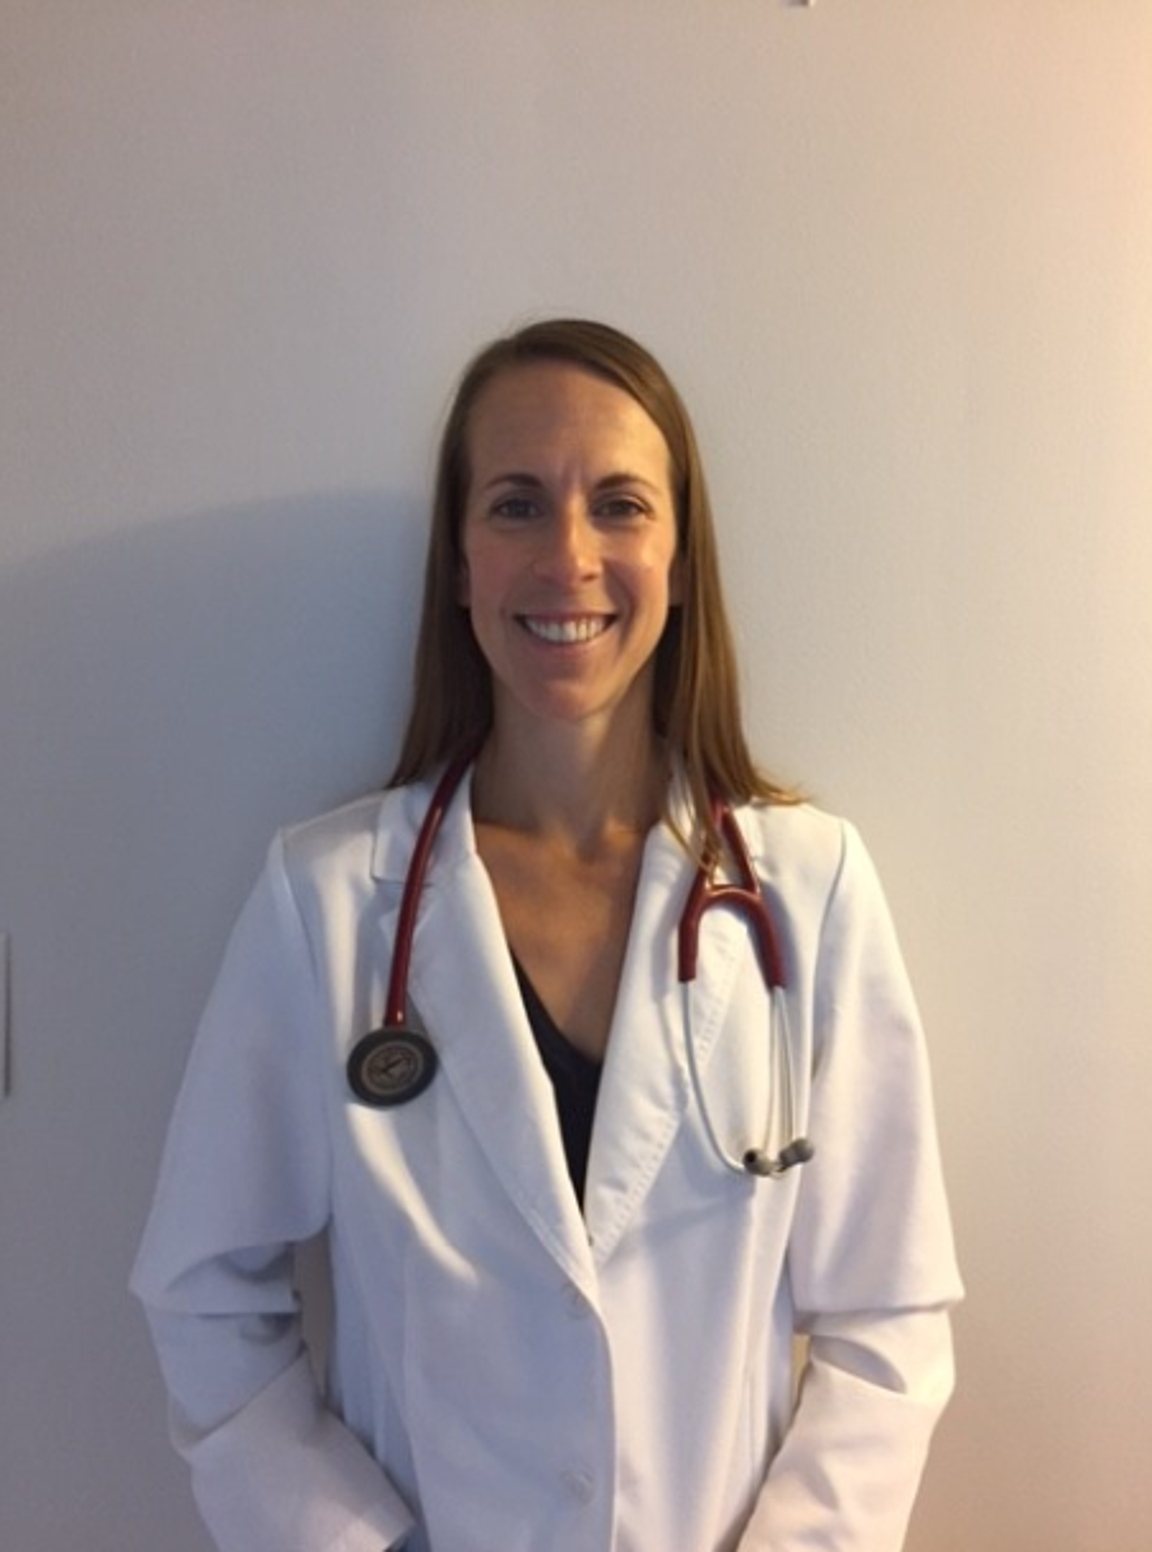 Nurse practitioners like Emily Keller combine the care and patient-focused mission of nursing with the decision-making abilities of a physician. (Photo: Visiting Nurse Association Health Group)